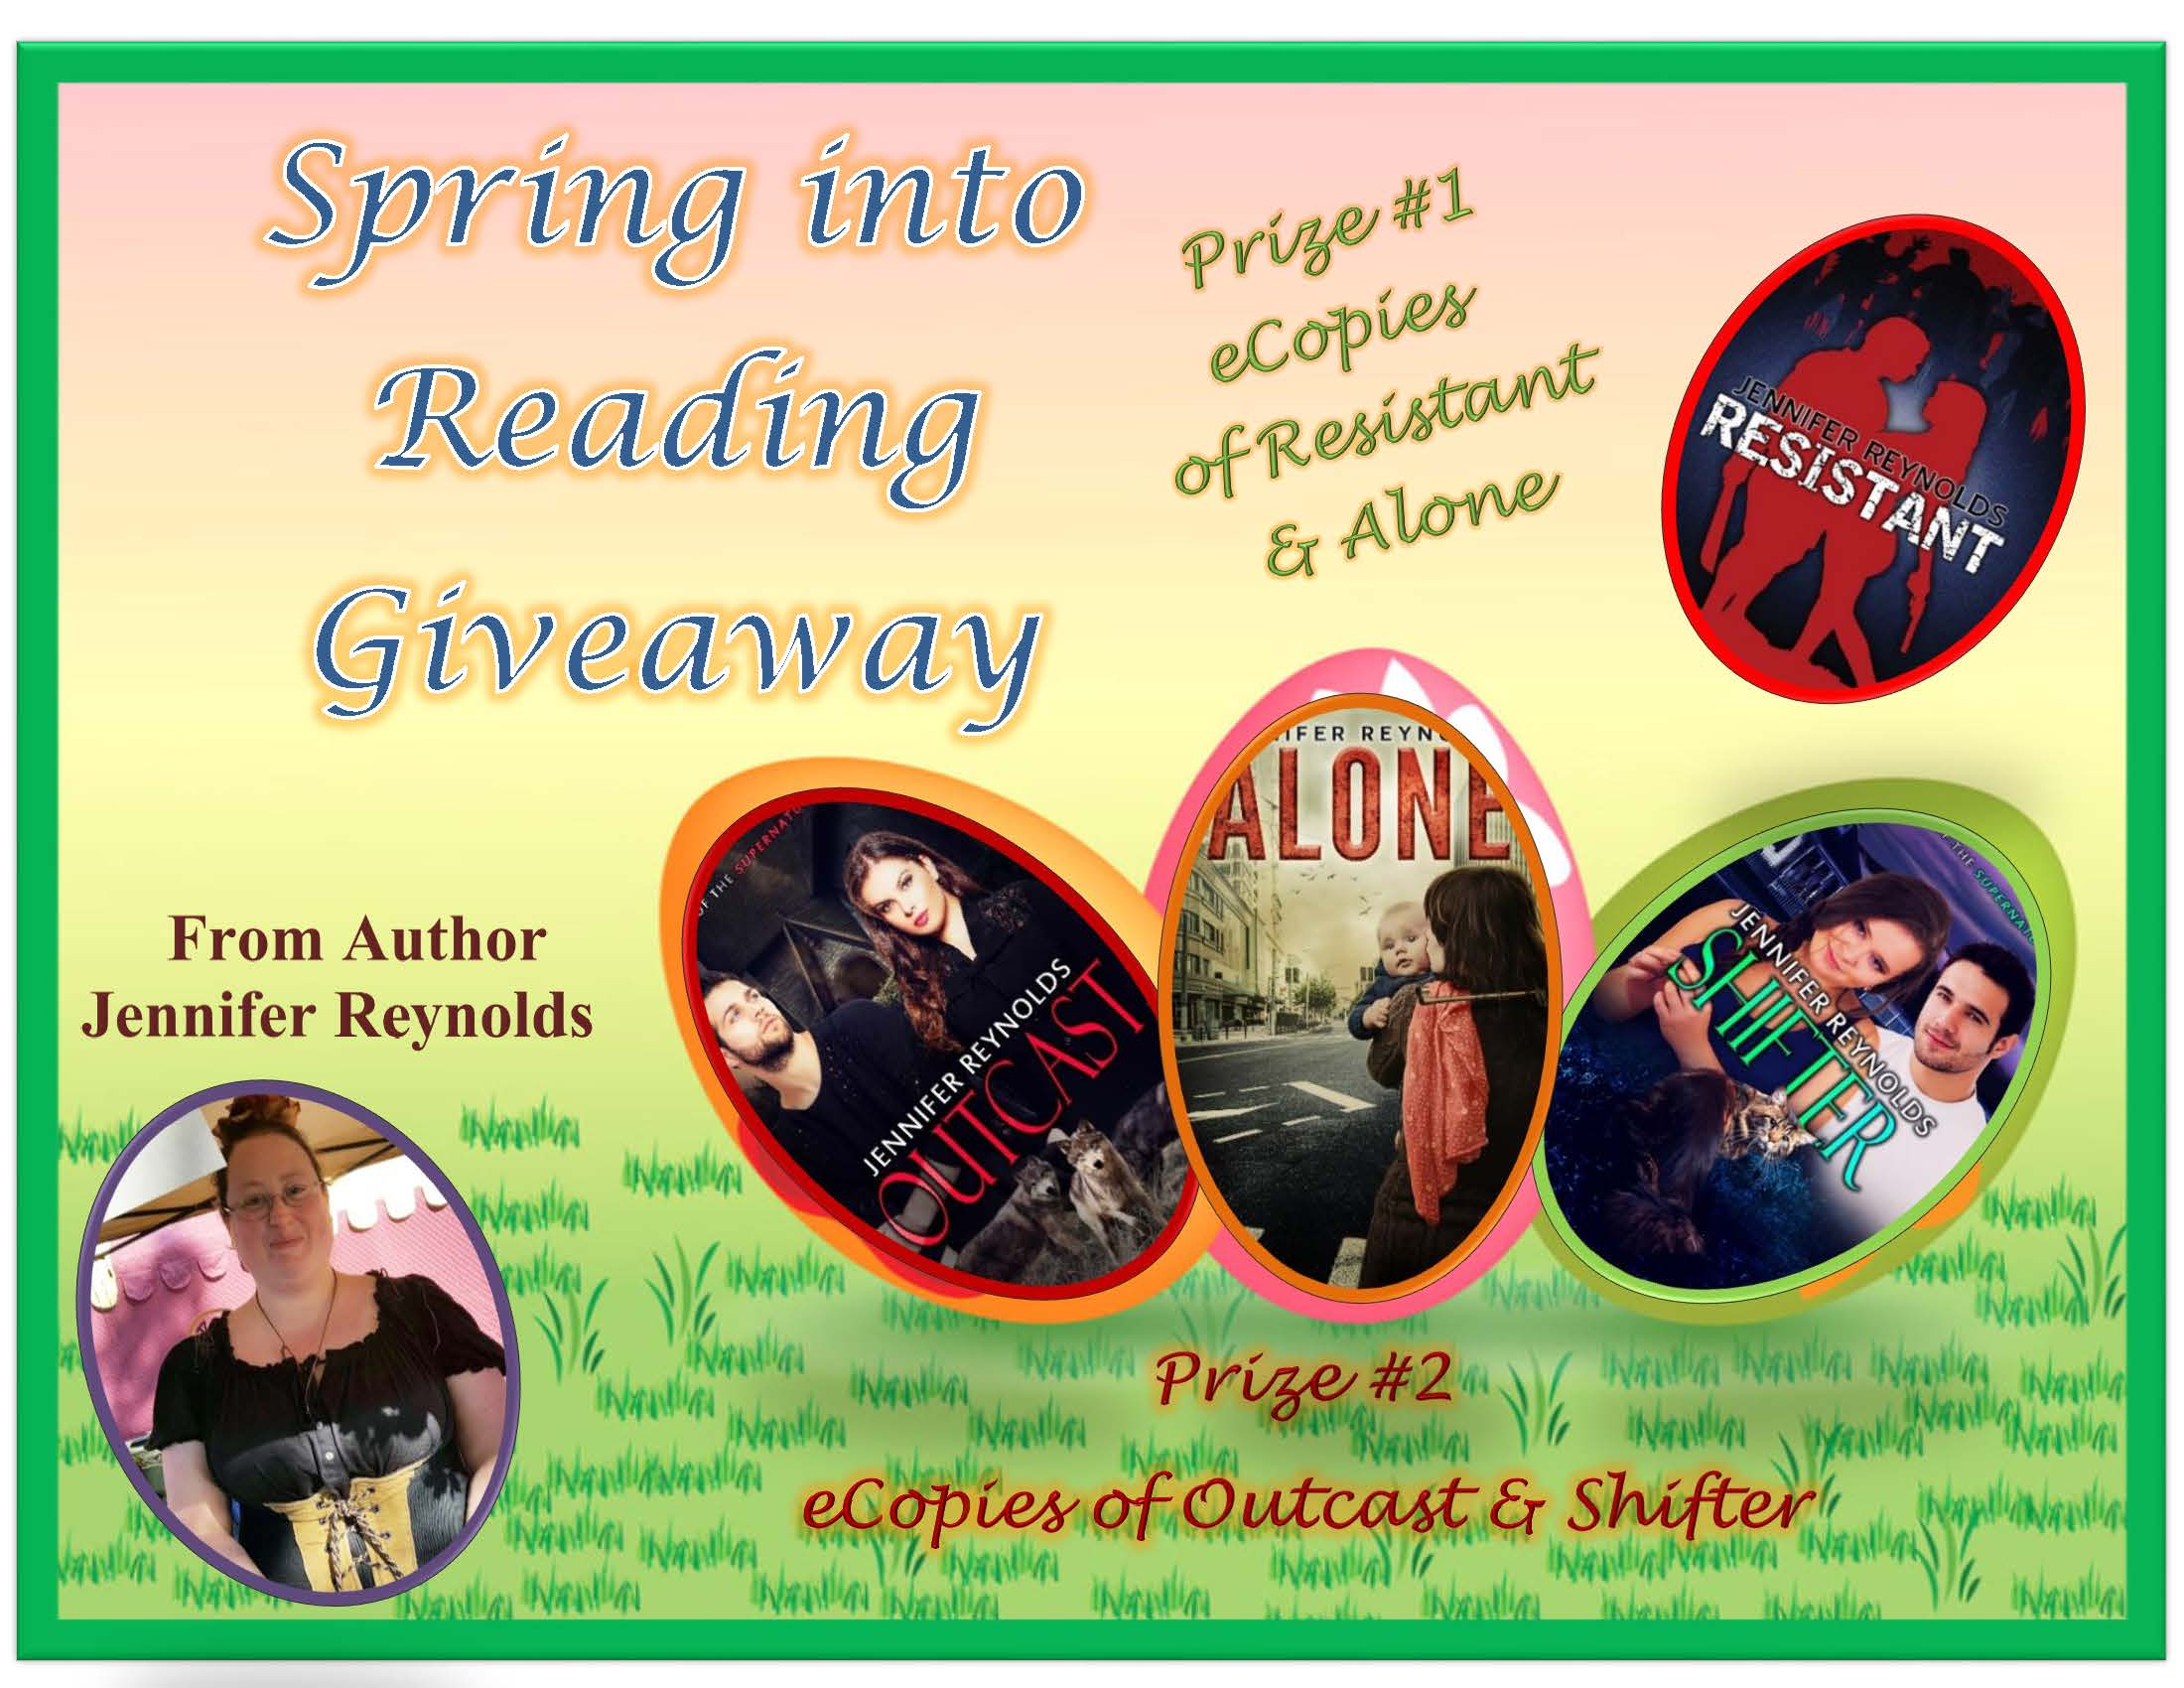 Spring into Reading 2017 Giveaway Prizes: Books, Gift Cards, & More Free to Enter $100 Pay Pall Cash Grand-prize  https://www.rafflecopter.com/rafl/display/2703c98f70/